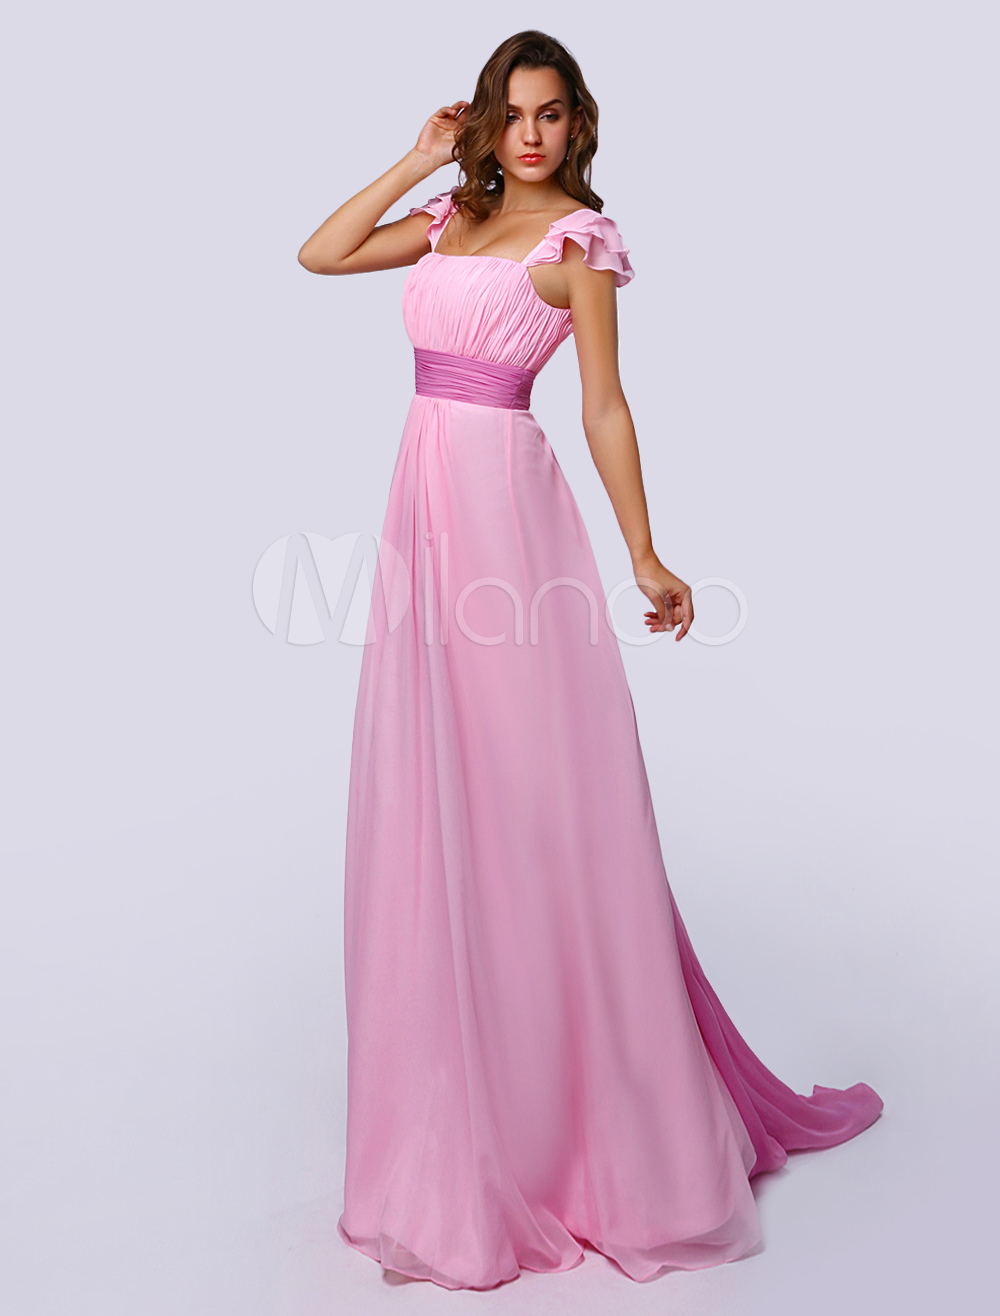 A-line Blushing Pink Chiffon Prom Dress With Square Neck Sash